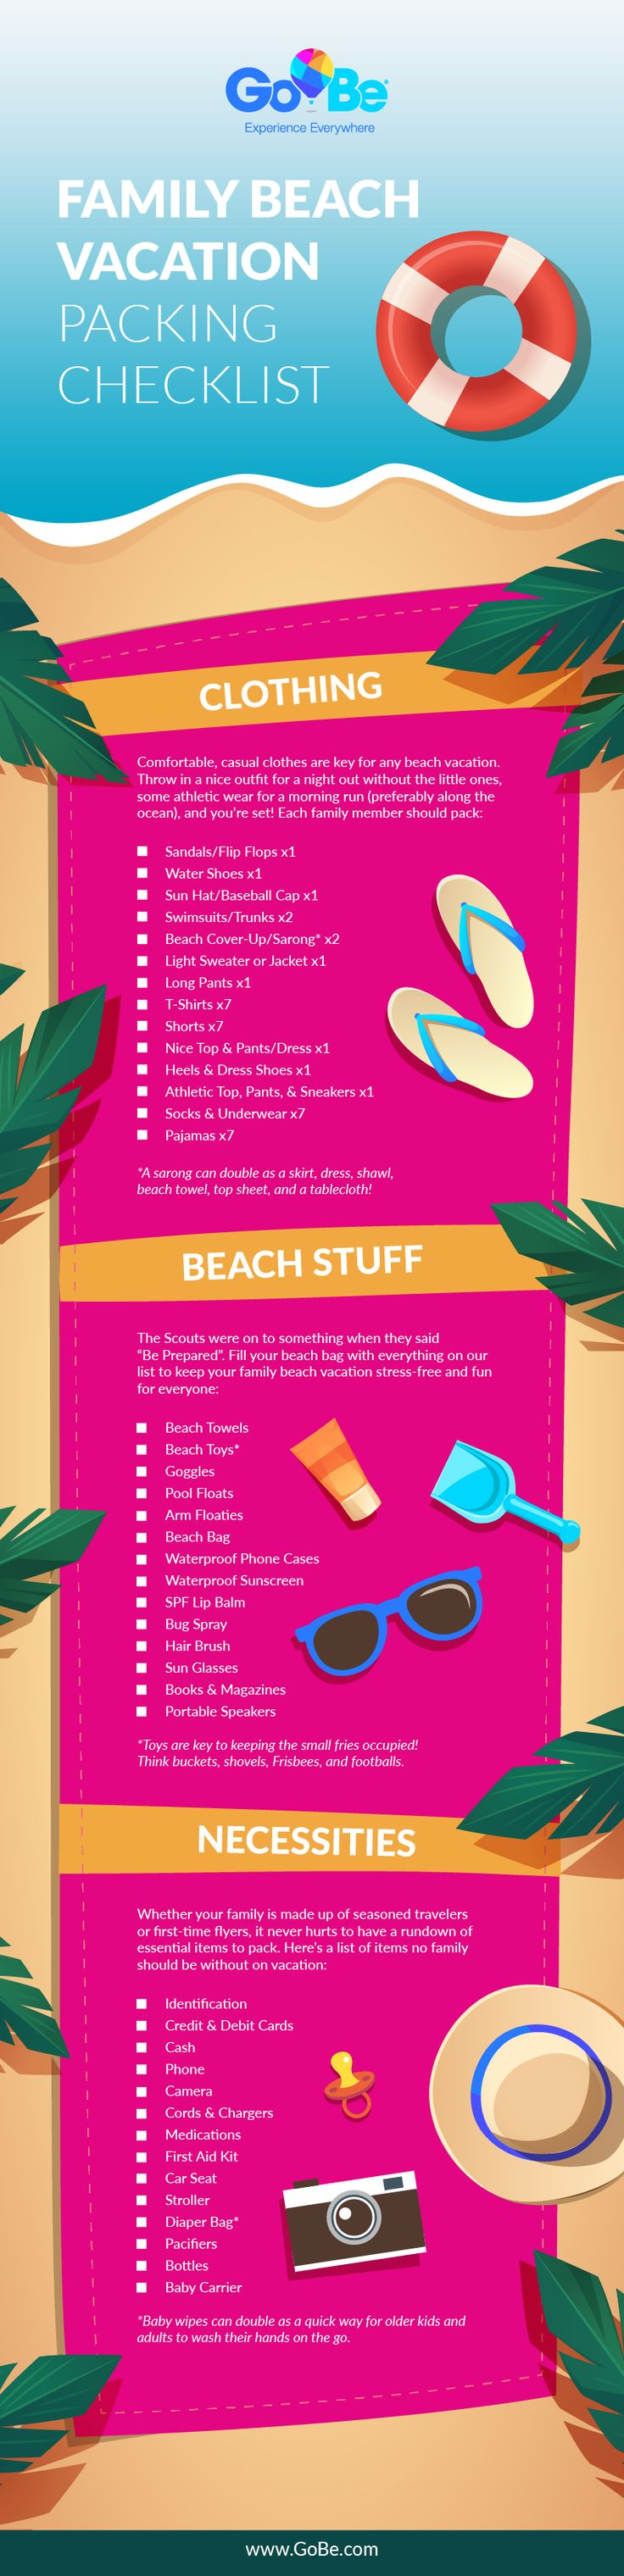 Family beach vacation packing checklist.